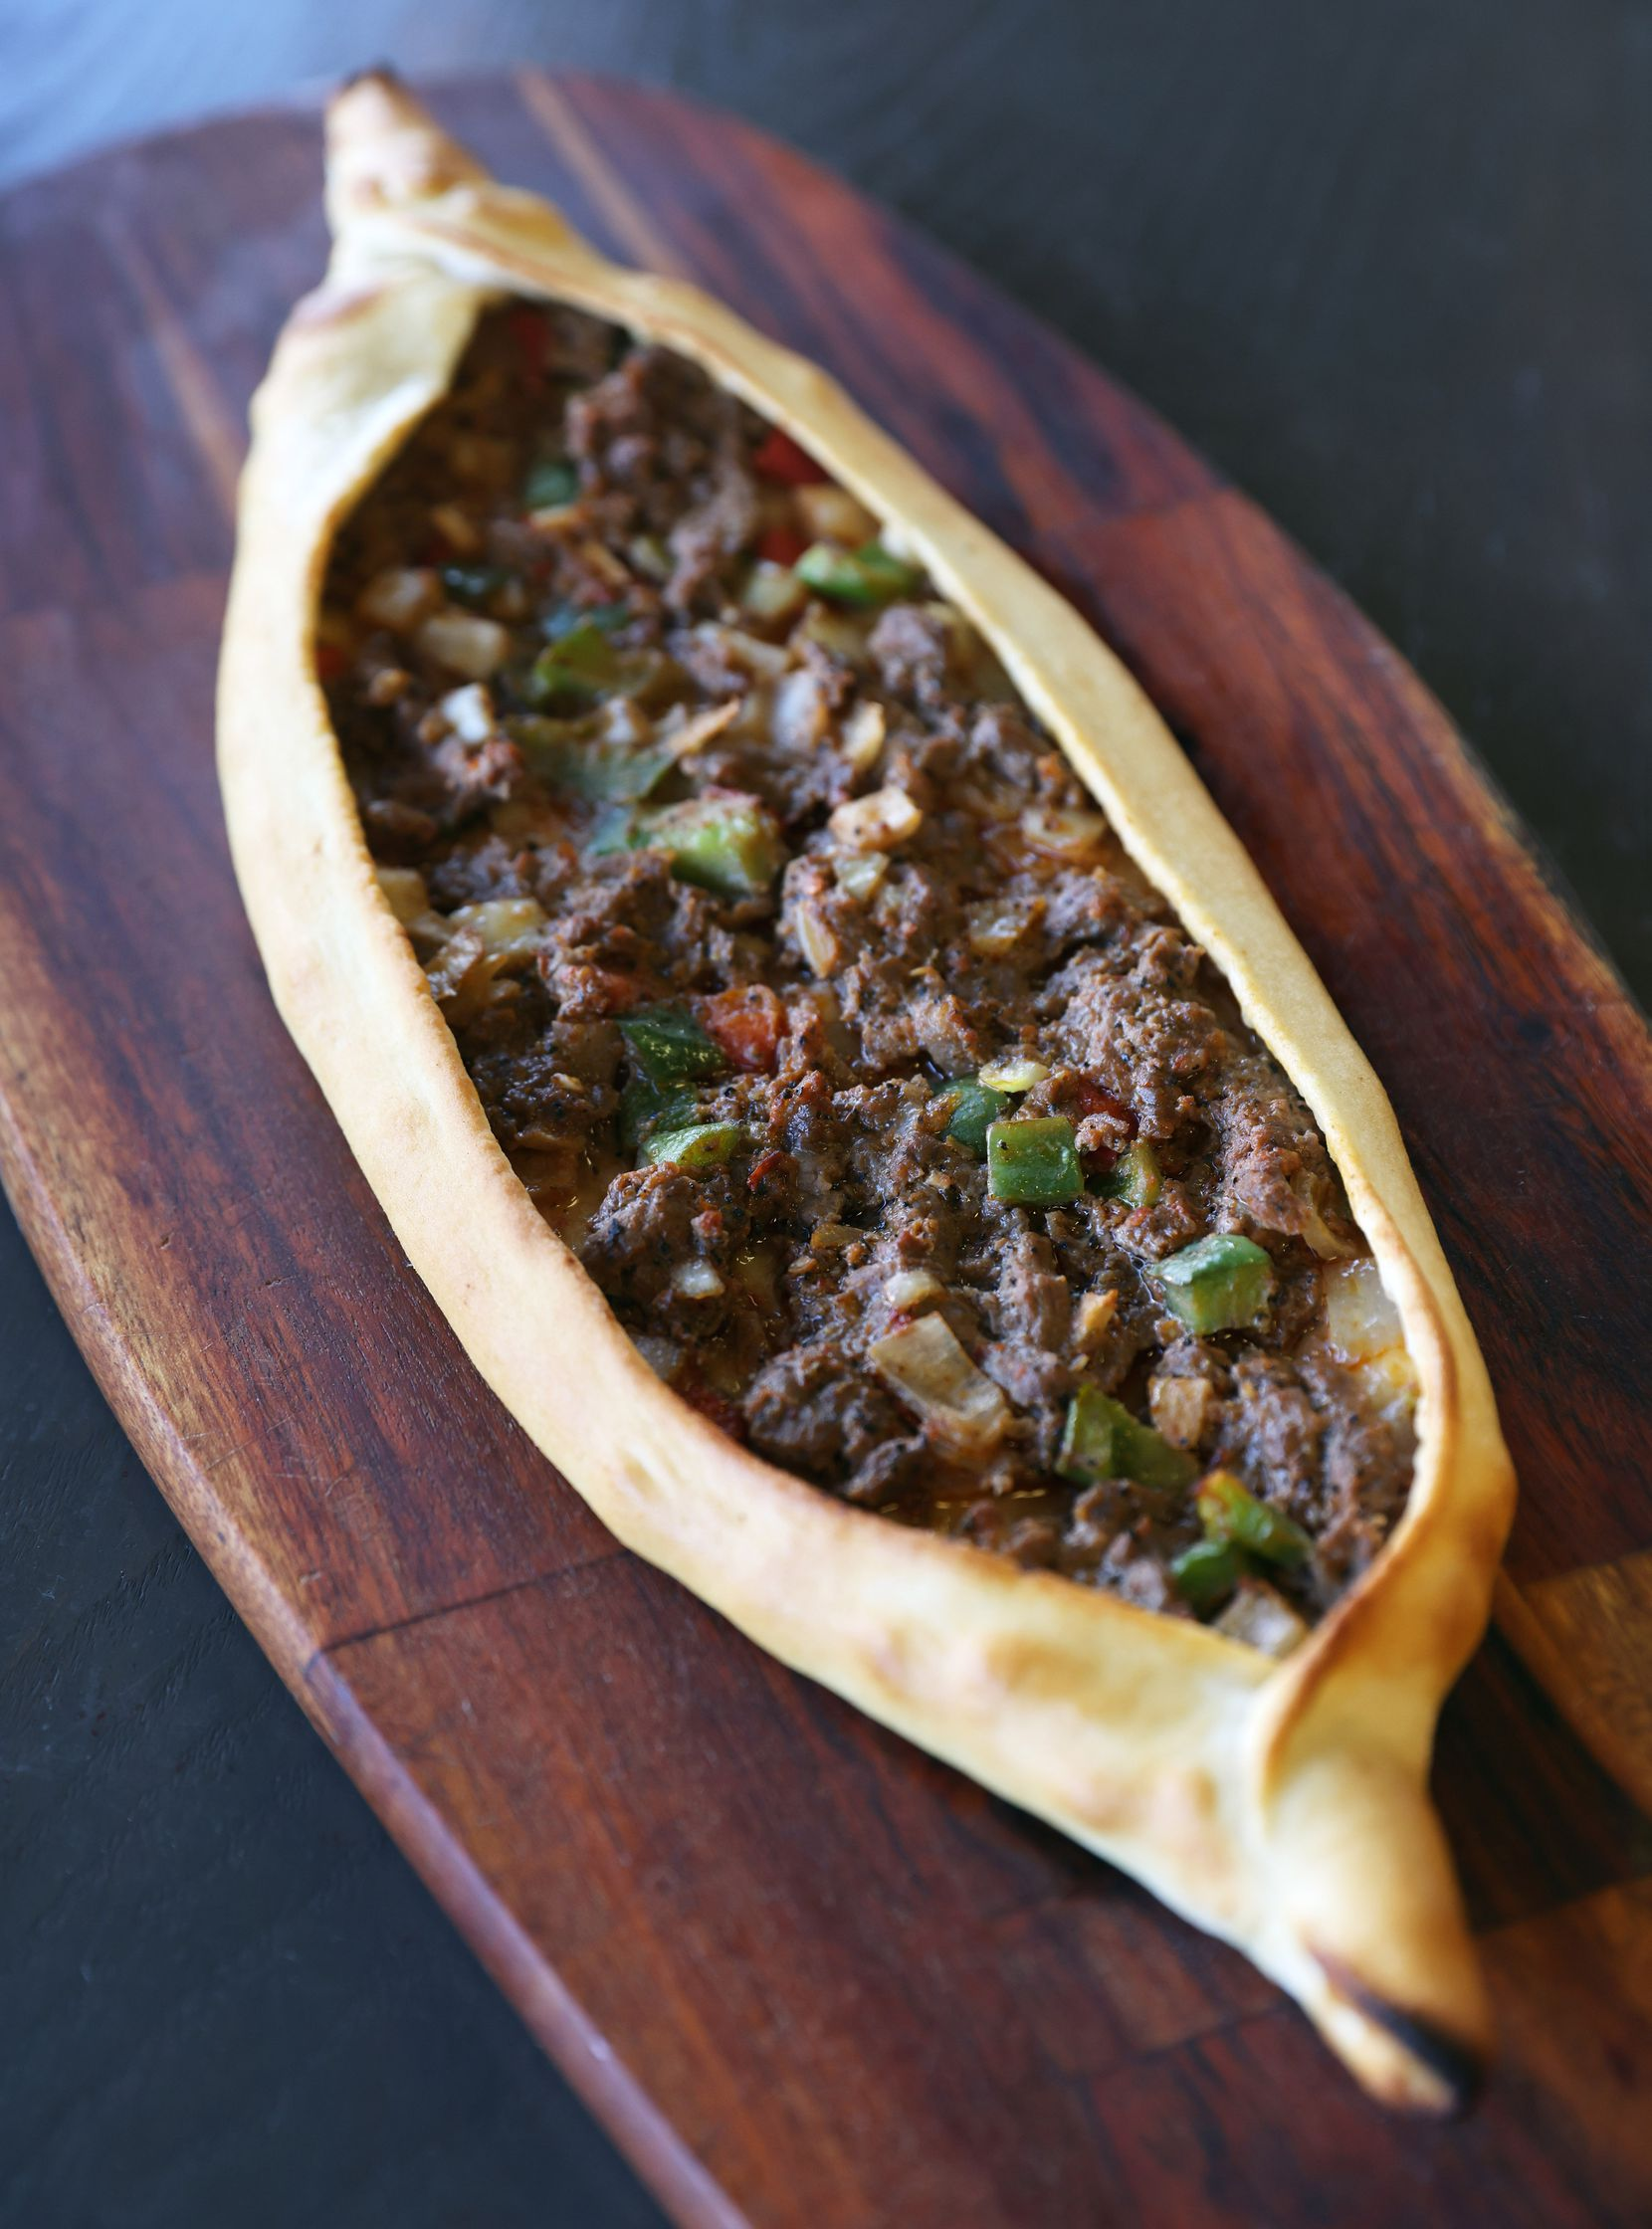 The kusbasili pide with diced beef is the one to try if you're visiting Lezzet Cafe for the first time.